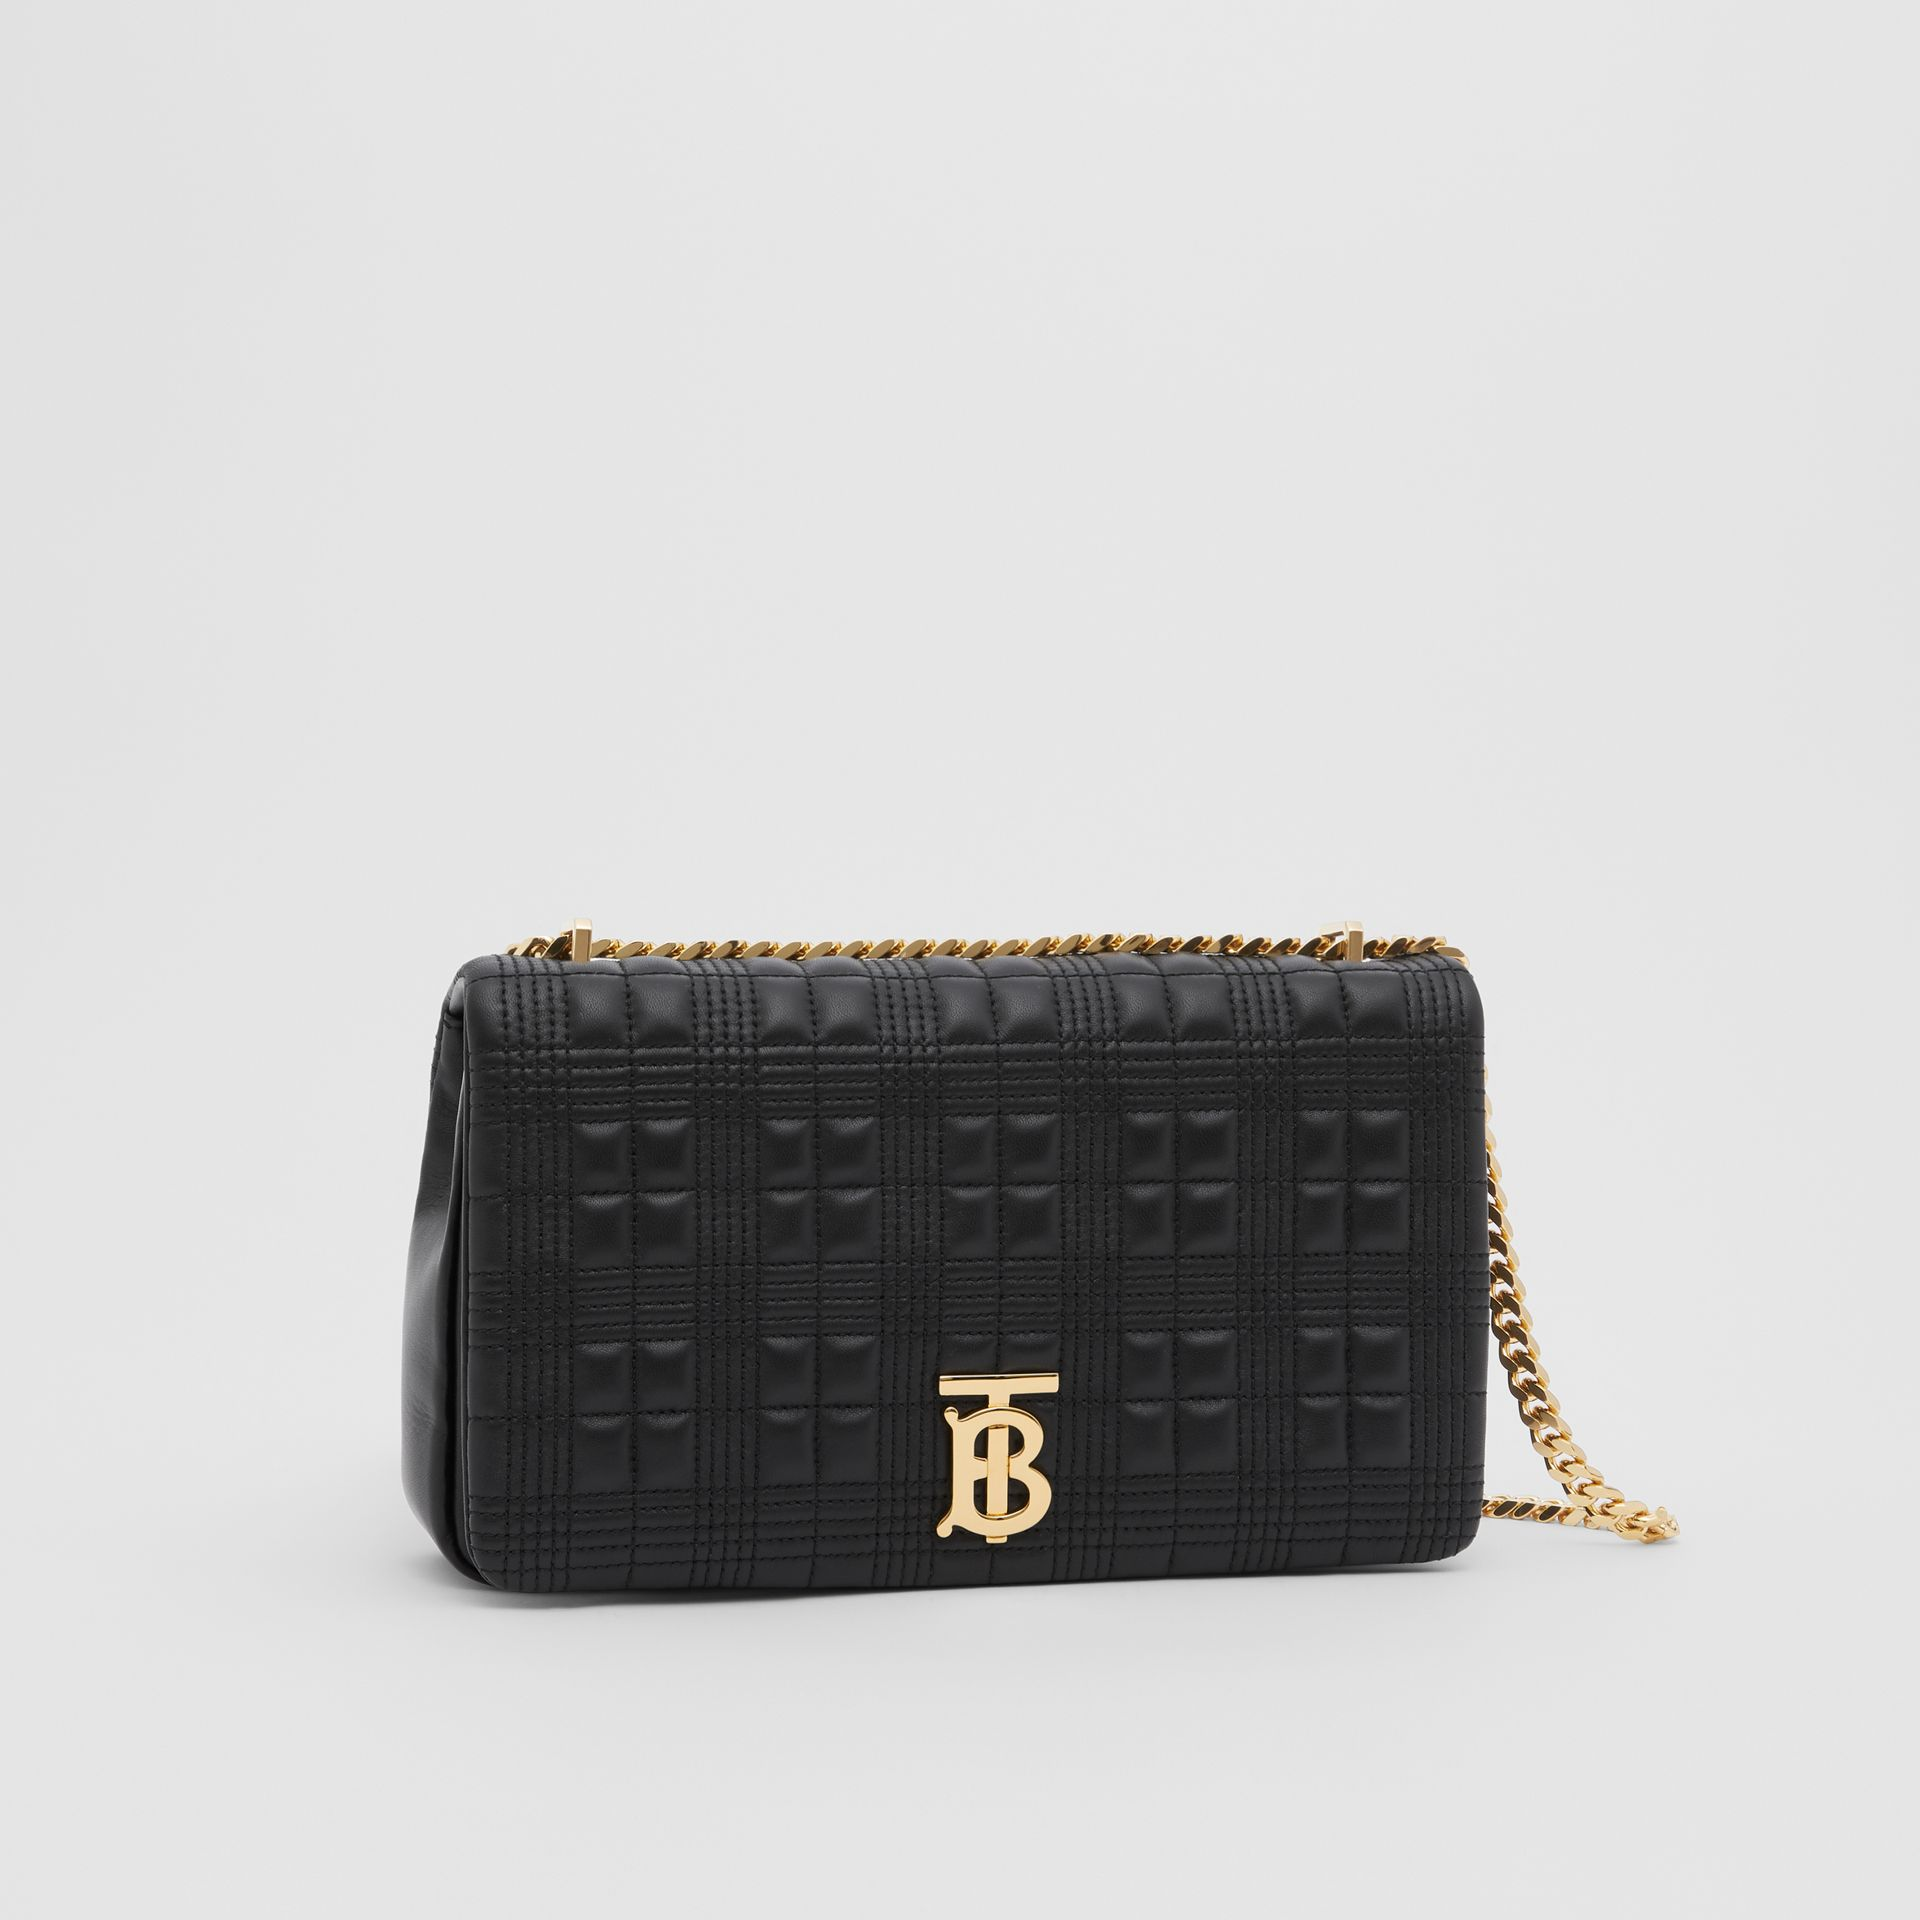 Medium Quilted Lambskin Lola Bag in Black - Women | Burberry - gallery image 4